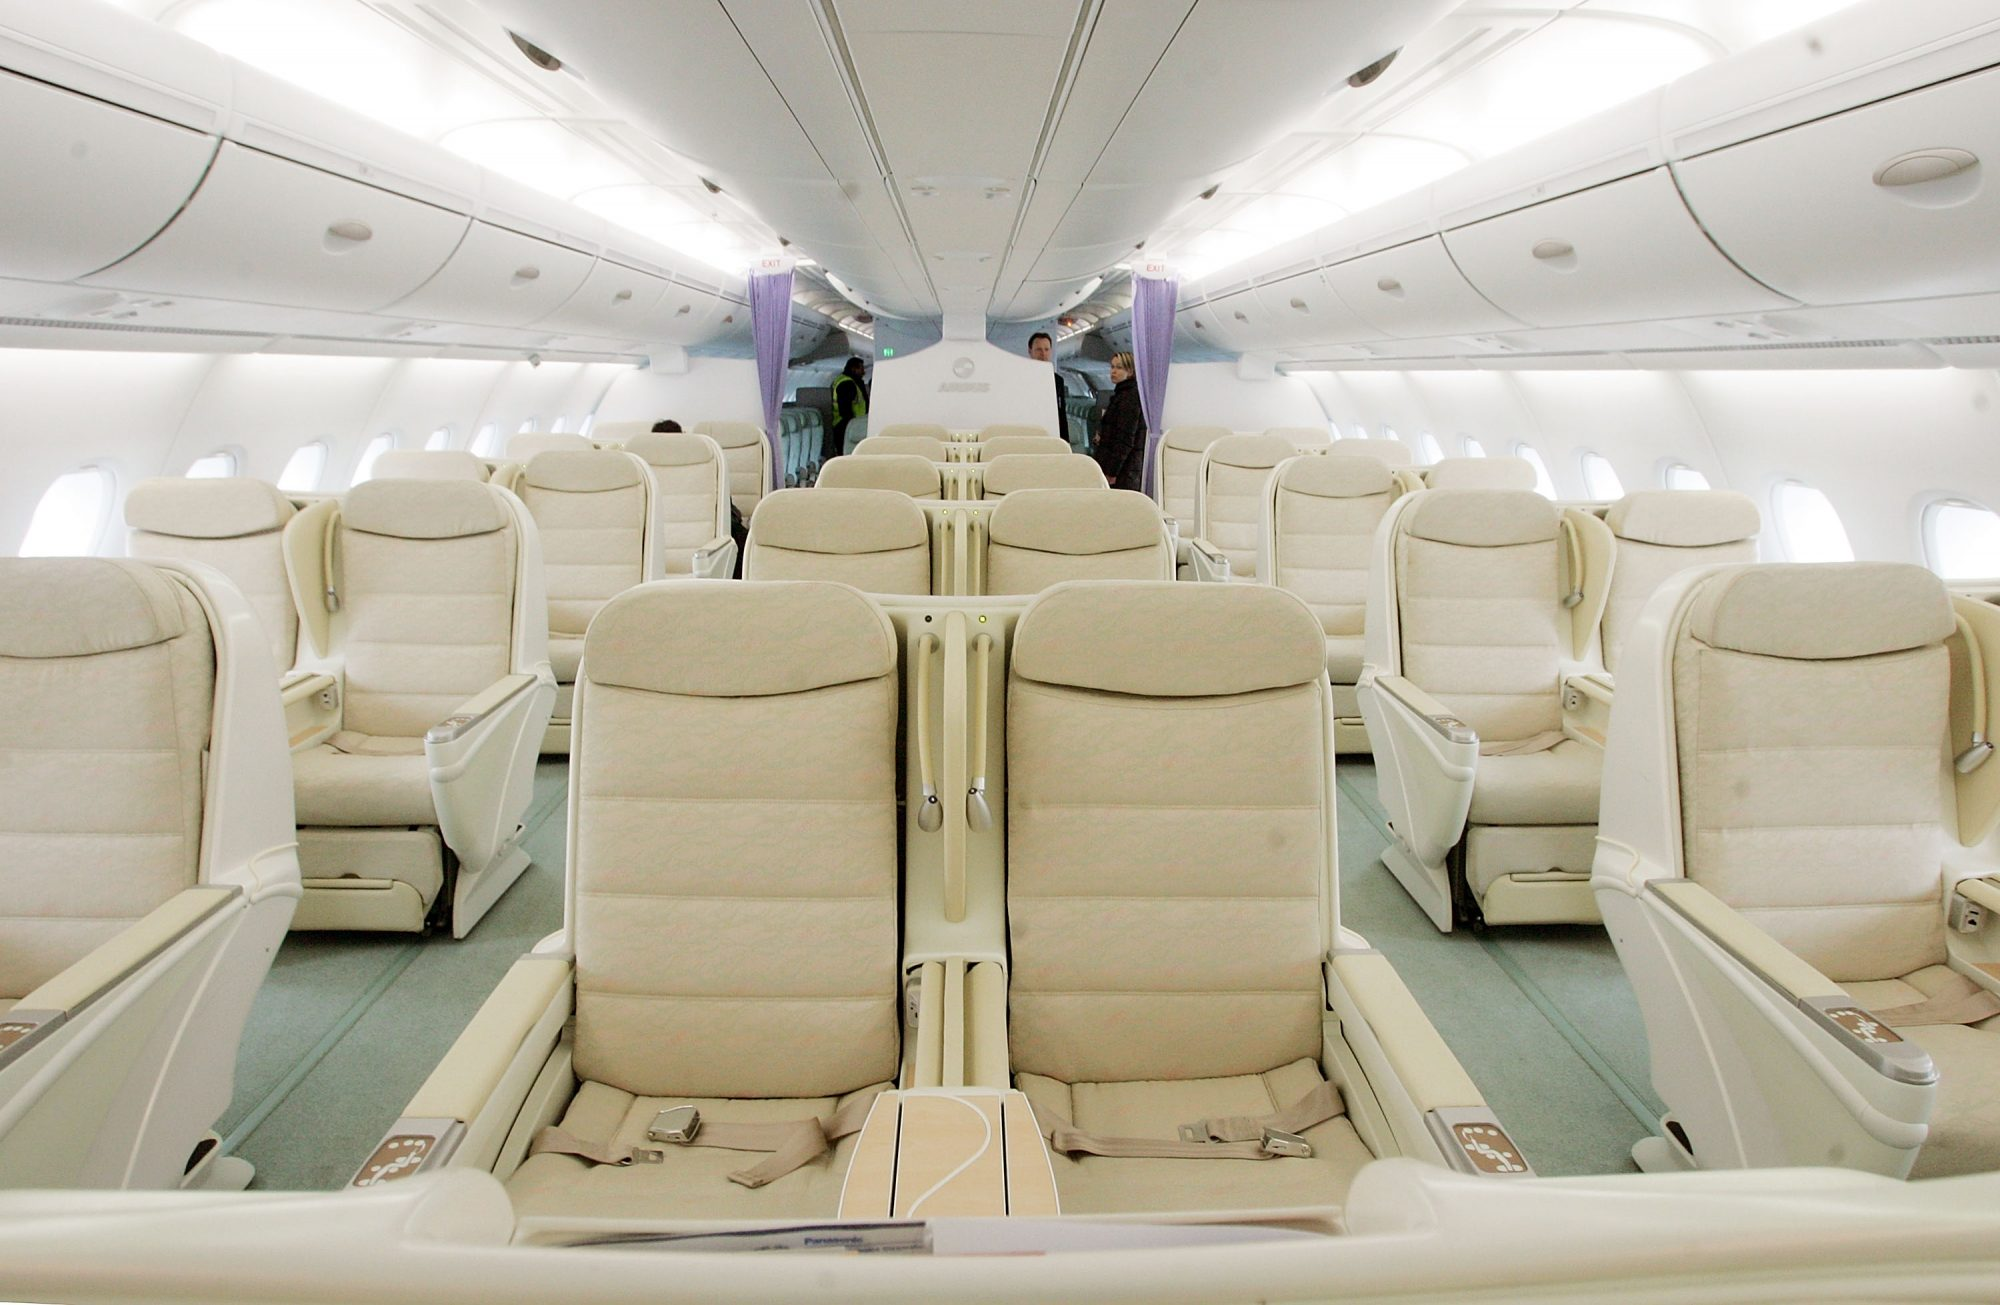 The Insider Secret to Scoring an Airline Upgrade